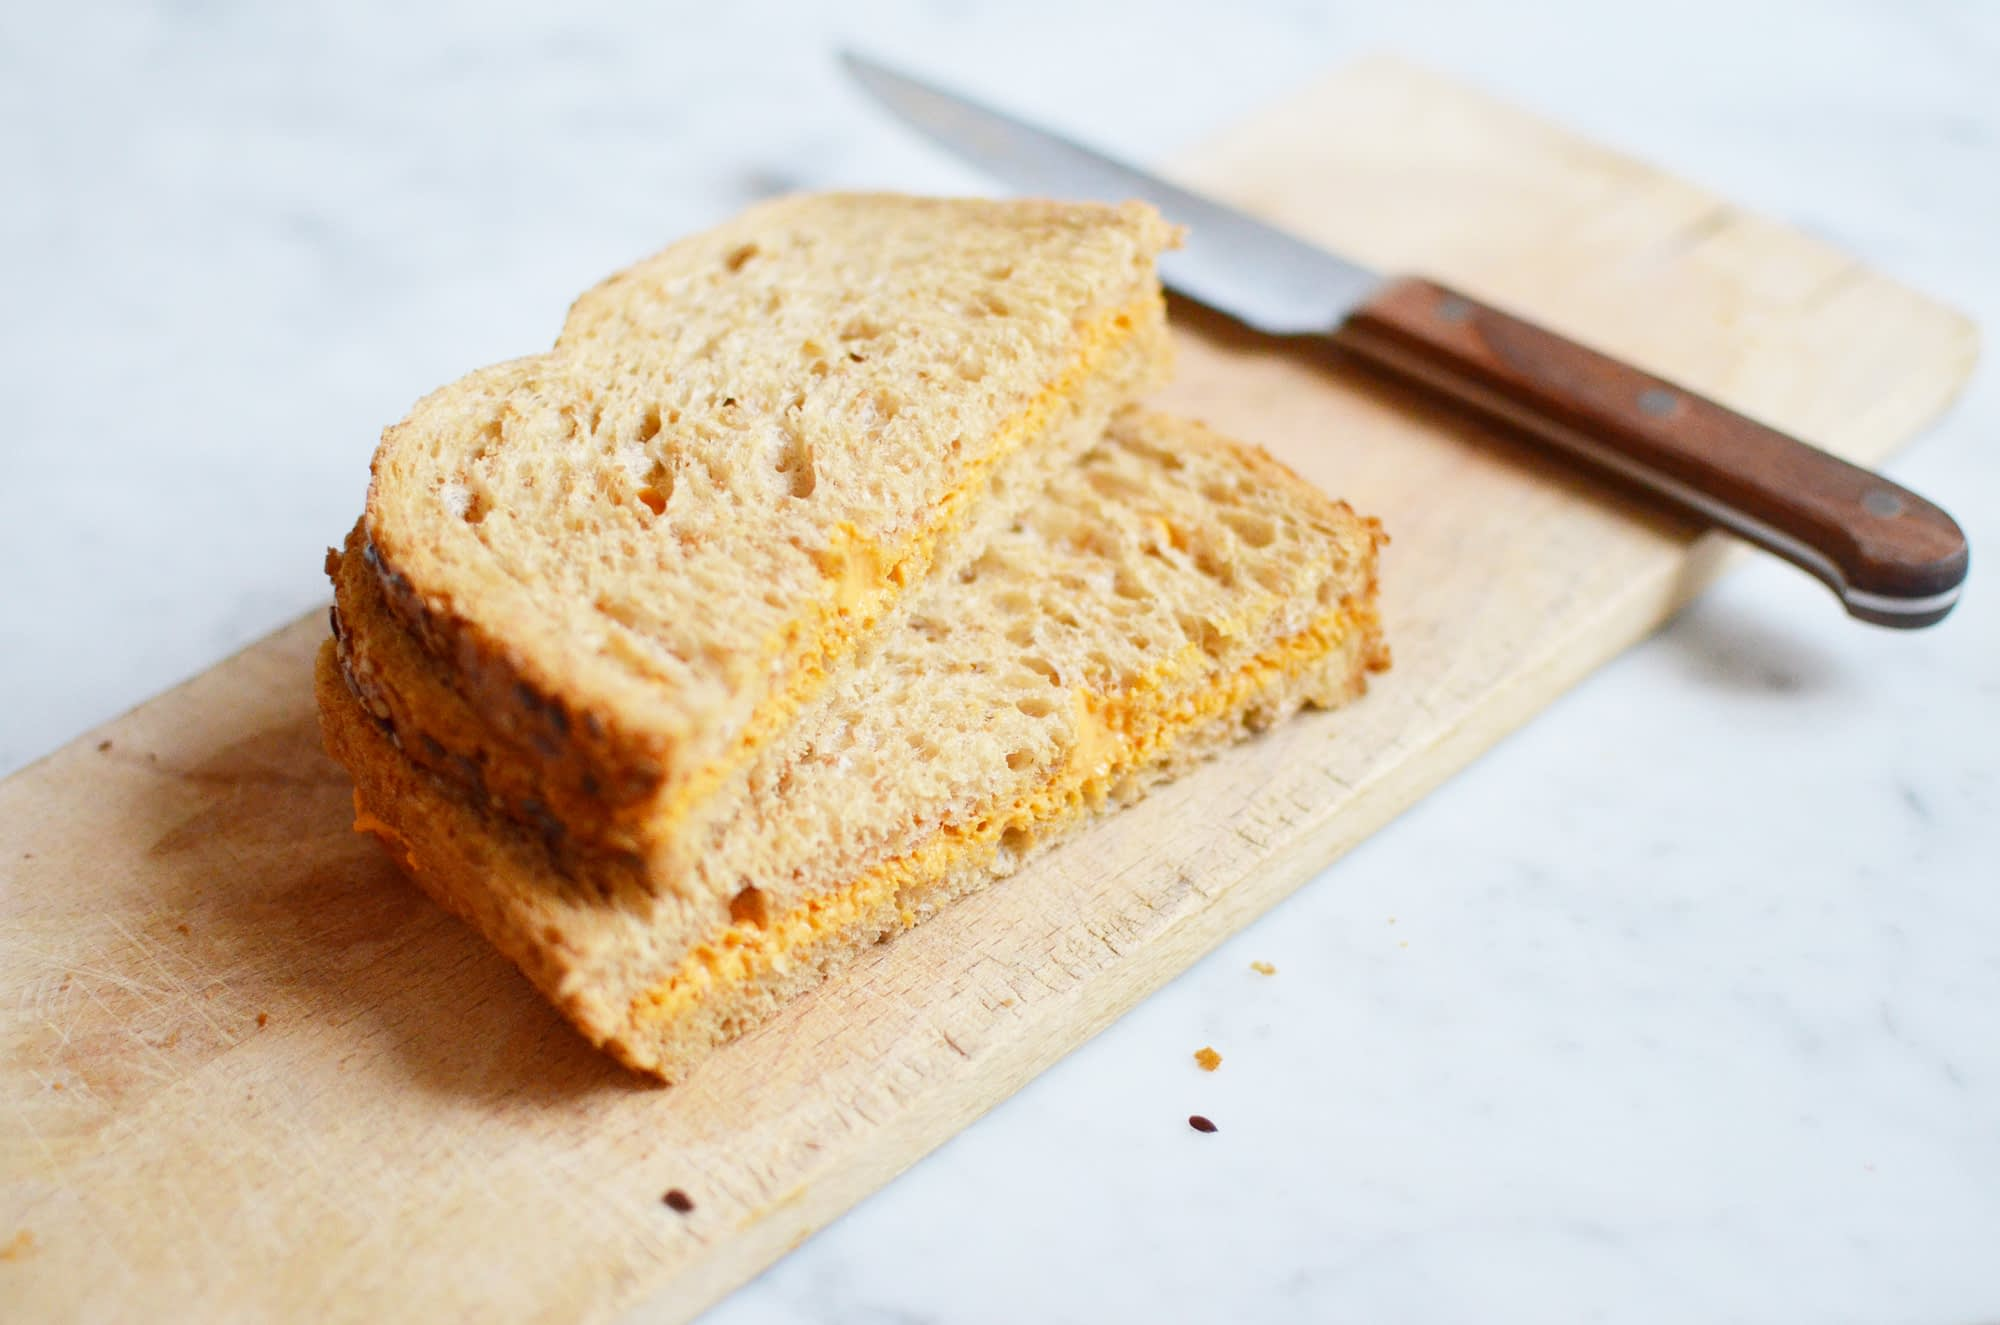 Sandwich with roasted red pepper hummus